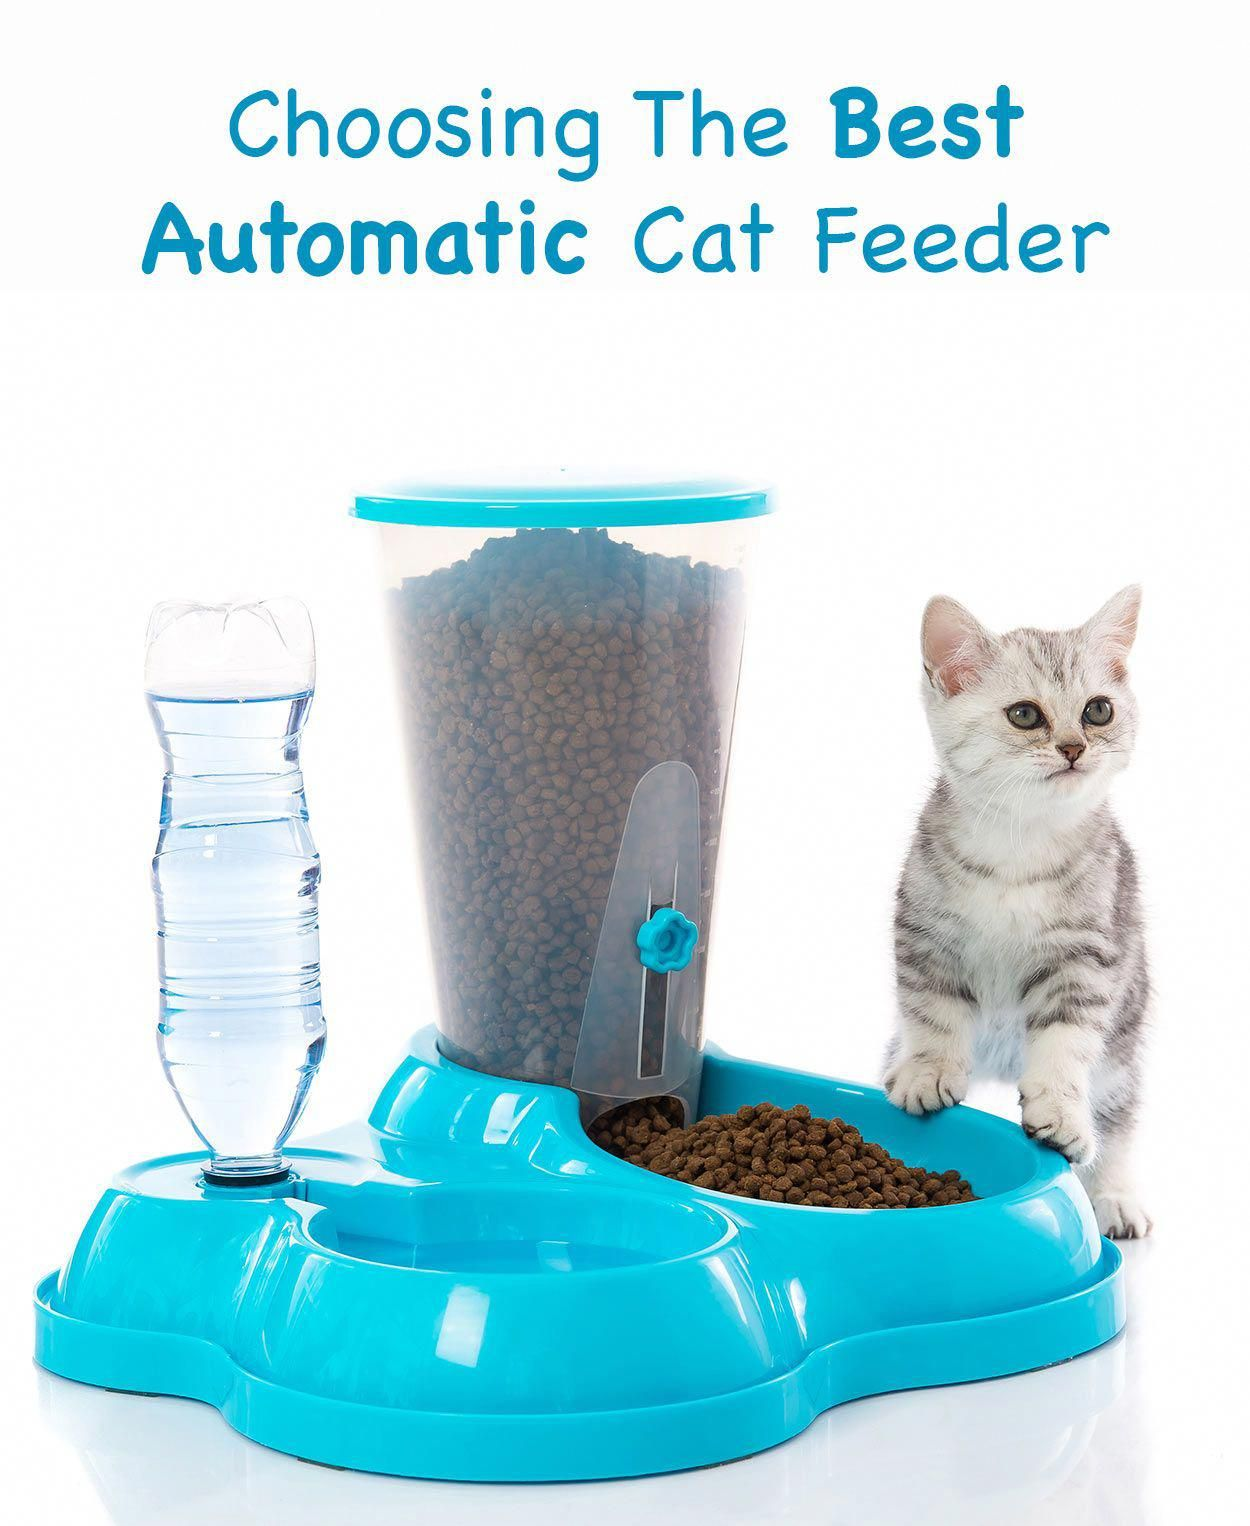 Best Automatic Cat Feeder. Great Product Reviews. #typesofcats